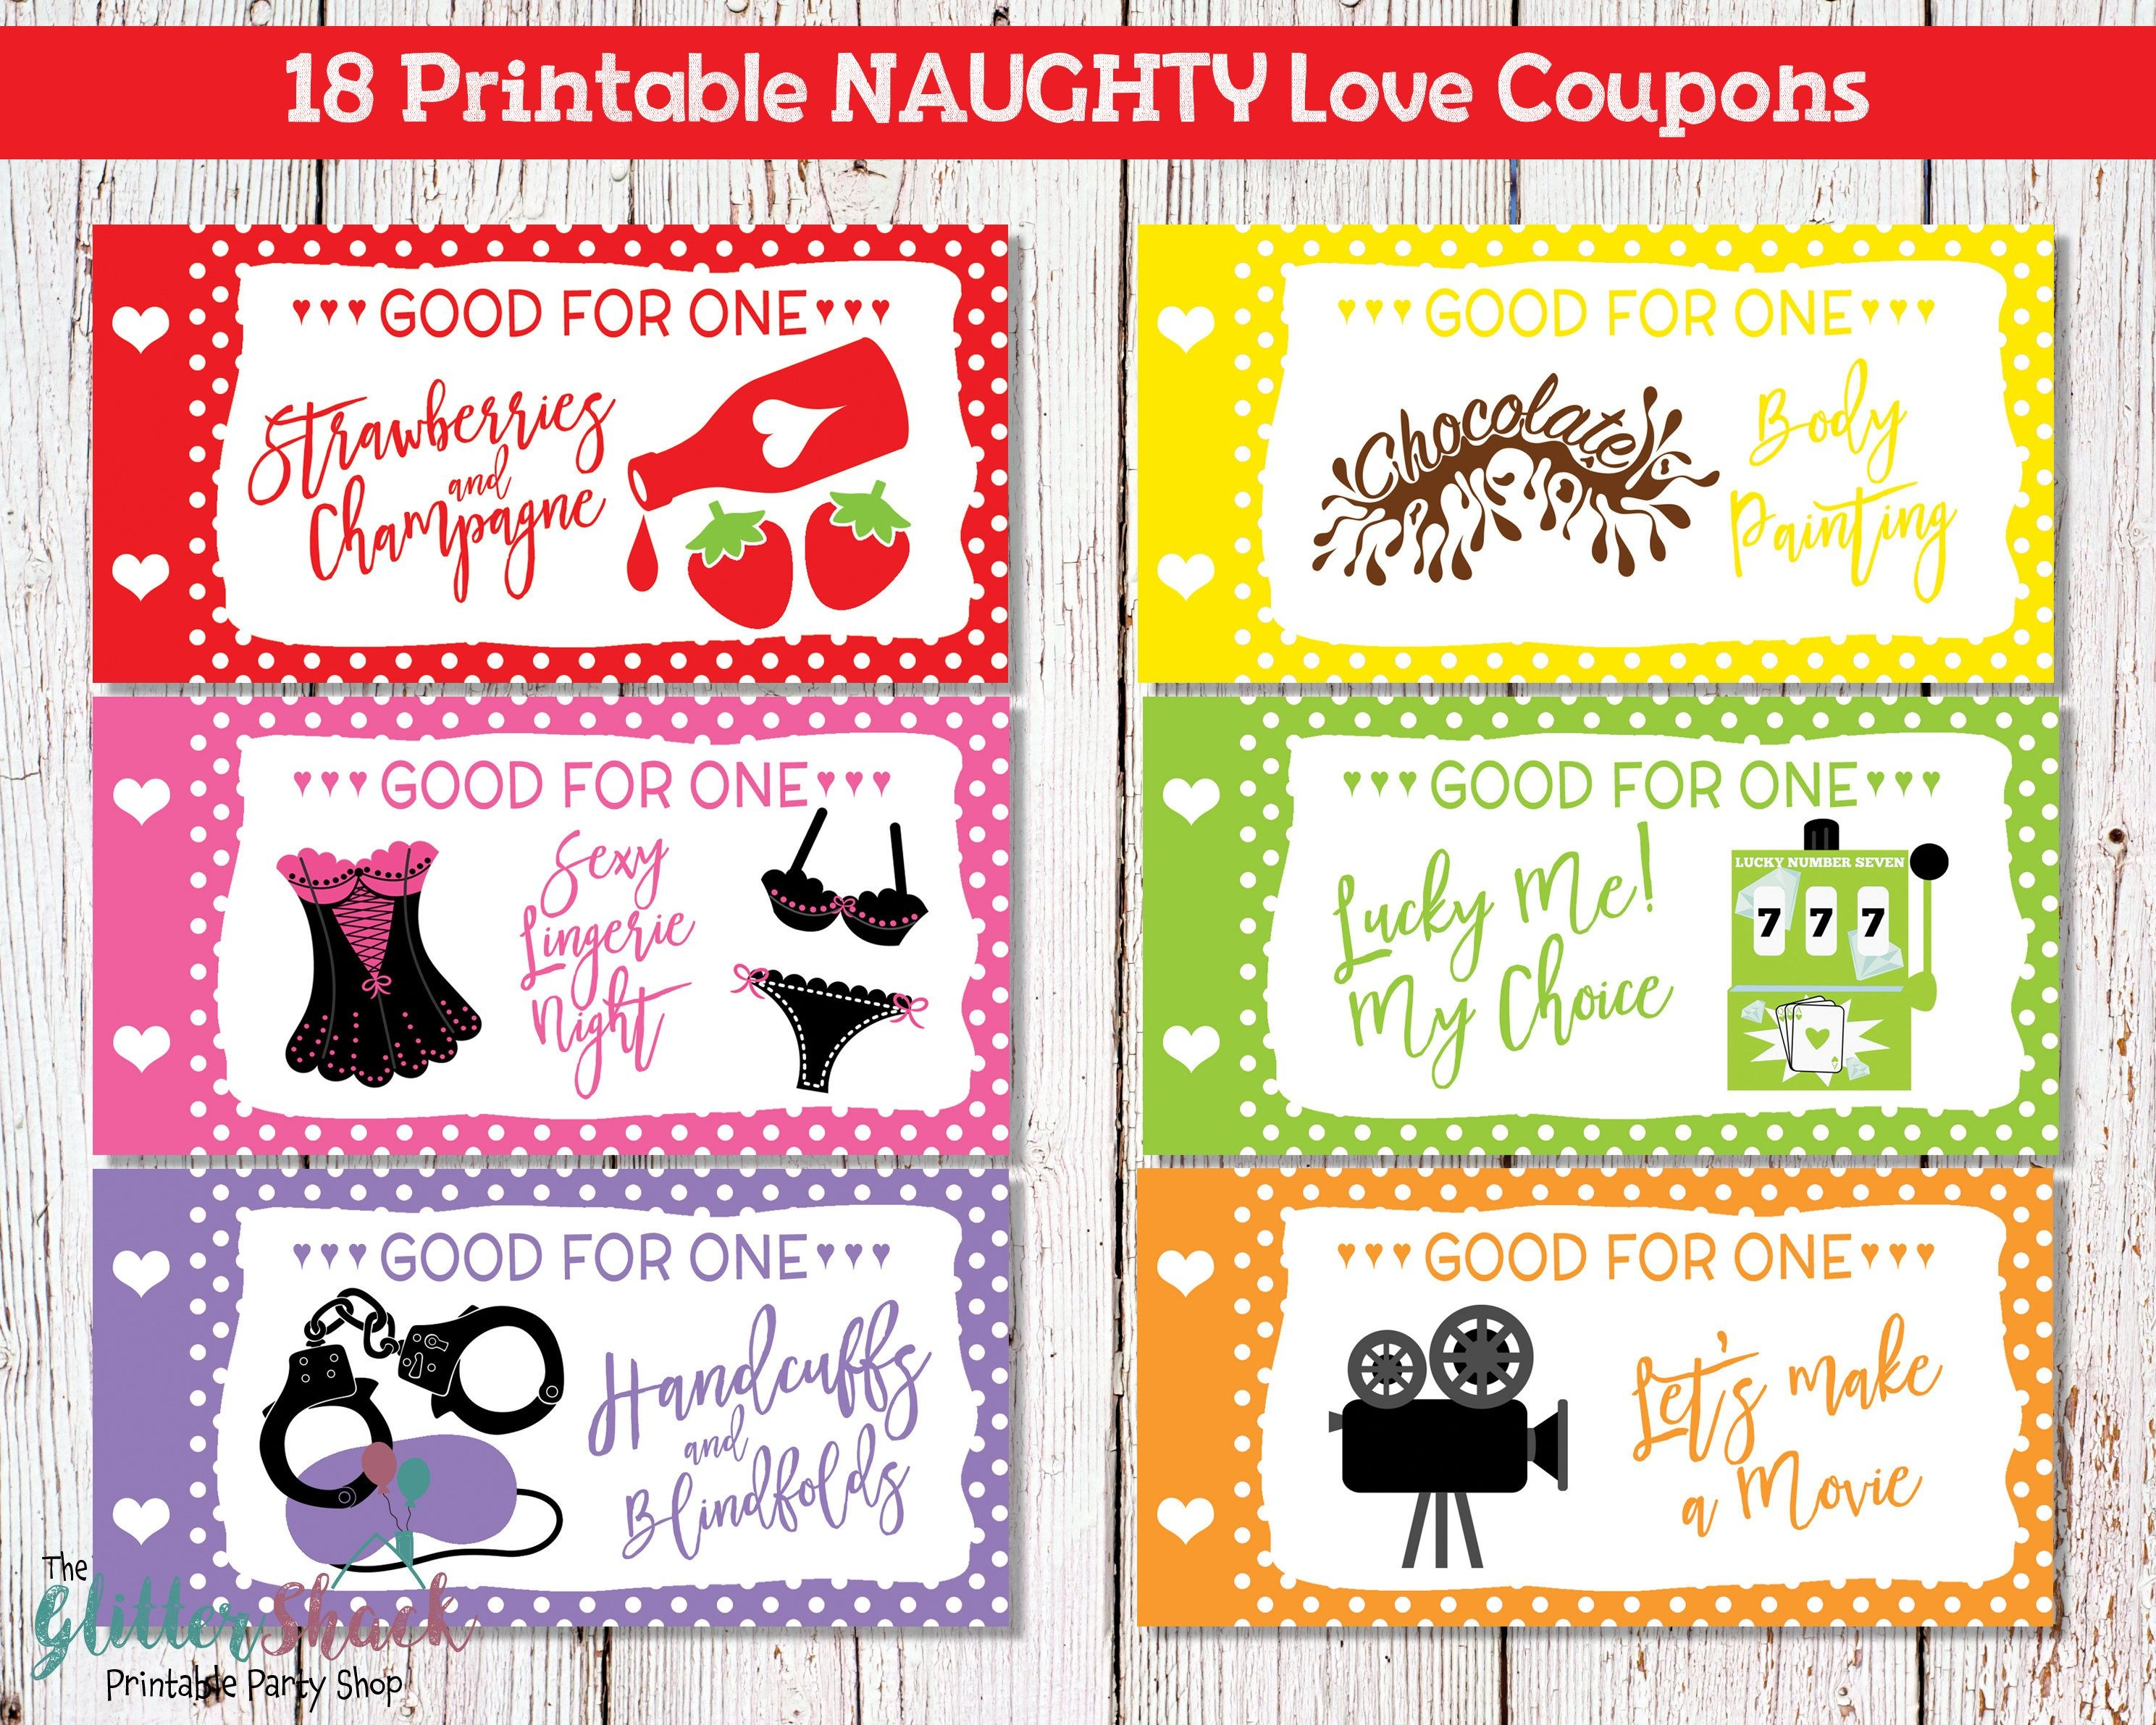 Printable Naughty Love Coupons For Men Husband Boyfriend, Sexy - Free Printable Kinky Coupons For Him